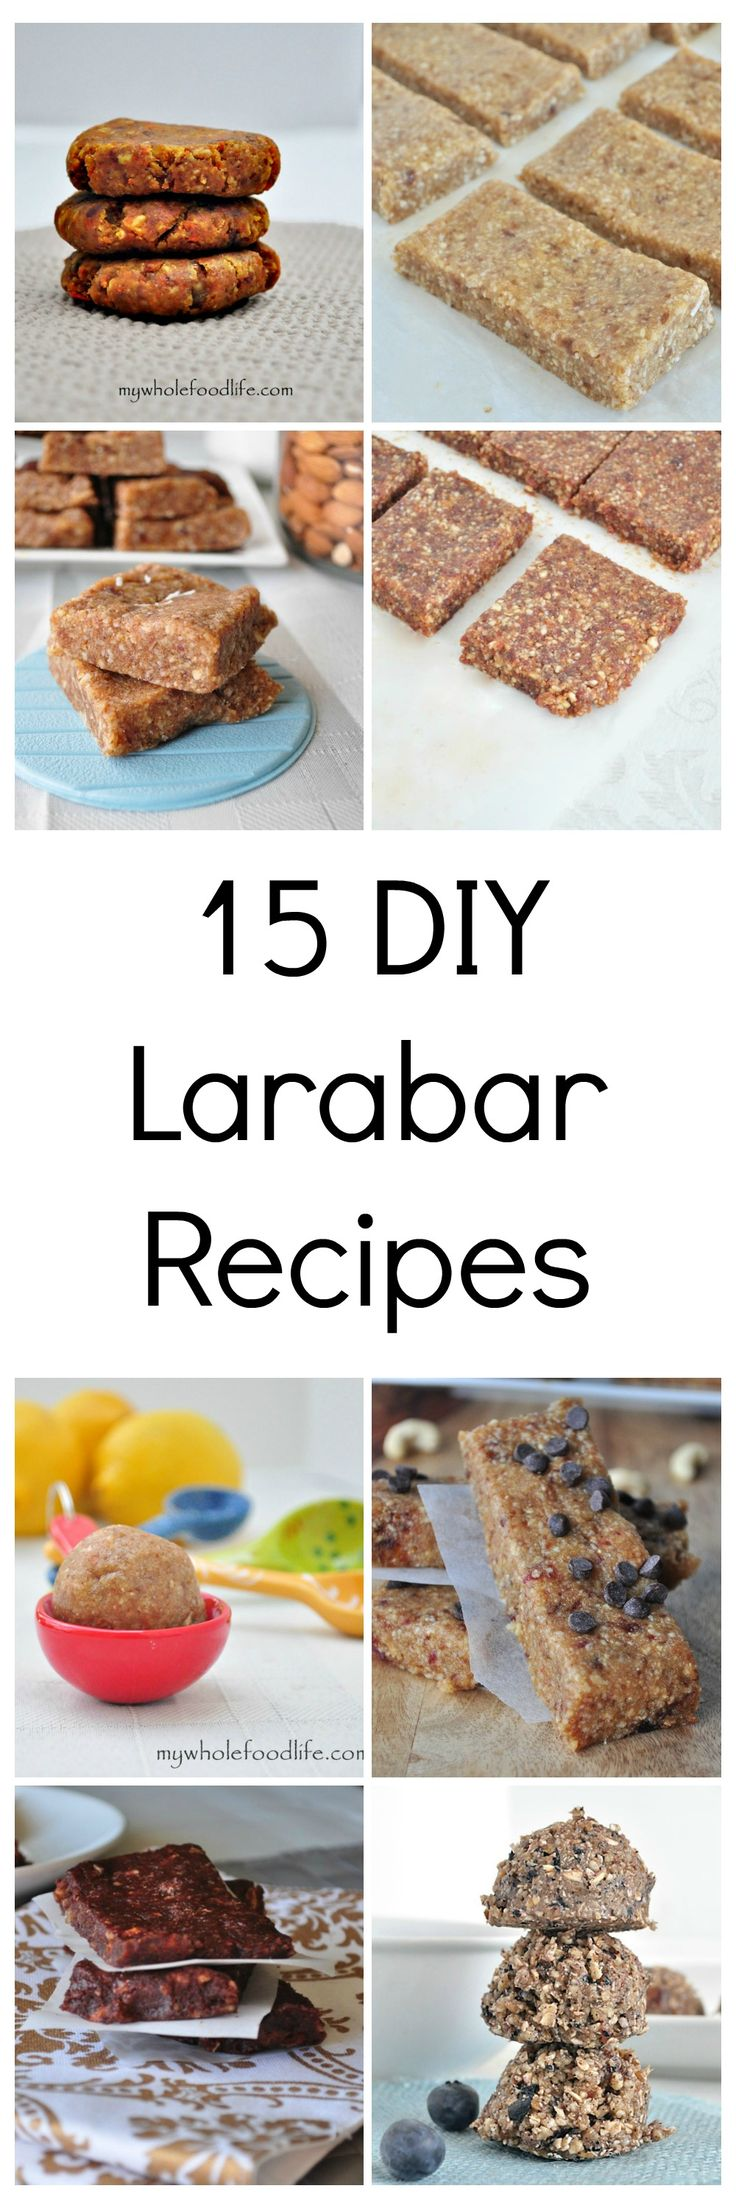 I love larabars, don't you?  Did you know they are super easy to make yourself?  This post is filled with larabar recipes so you never need to get store bought again!  You can roll them into balls, or cut them into bars. I do both.  I hope you enjoy them!! Pineapple Coconut Cake Larabars Cherry …